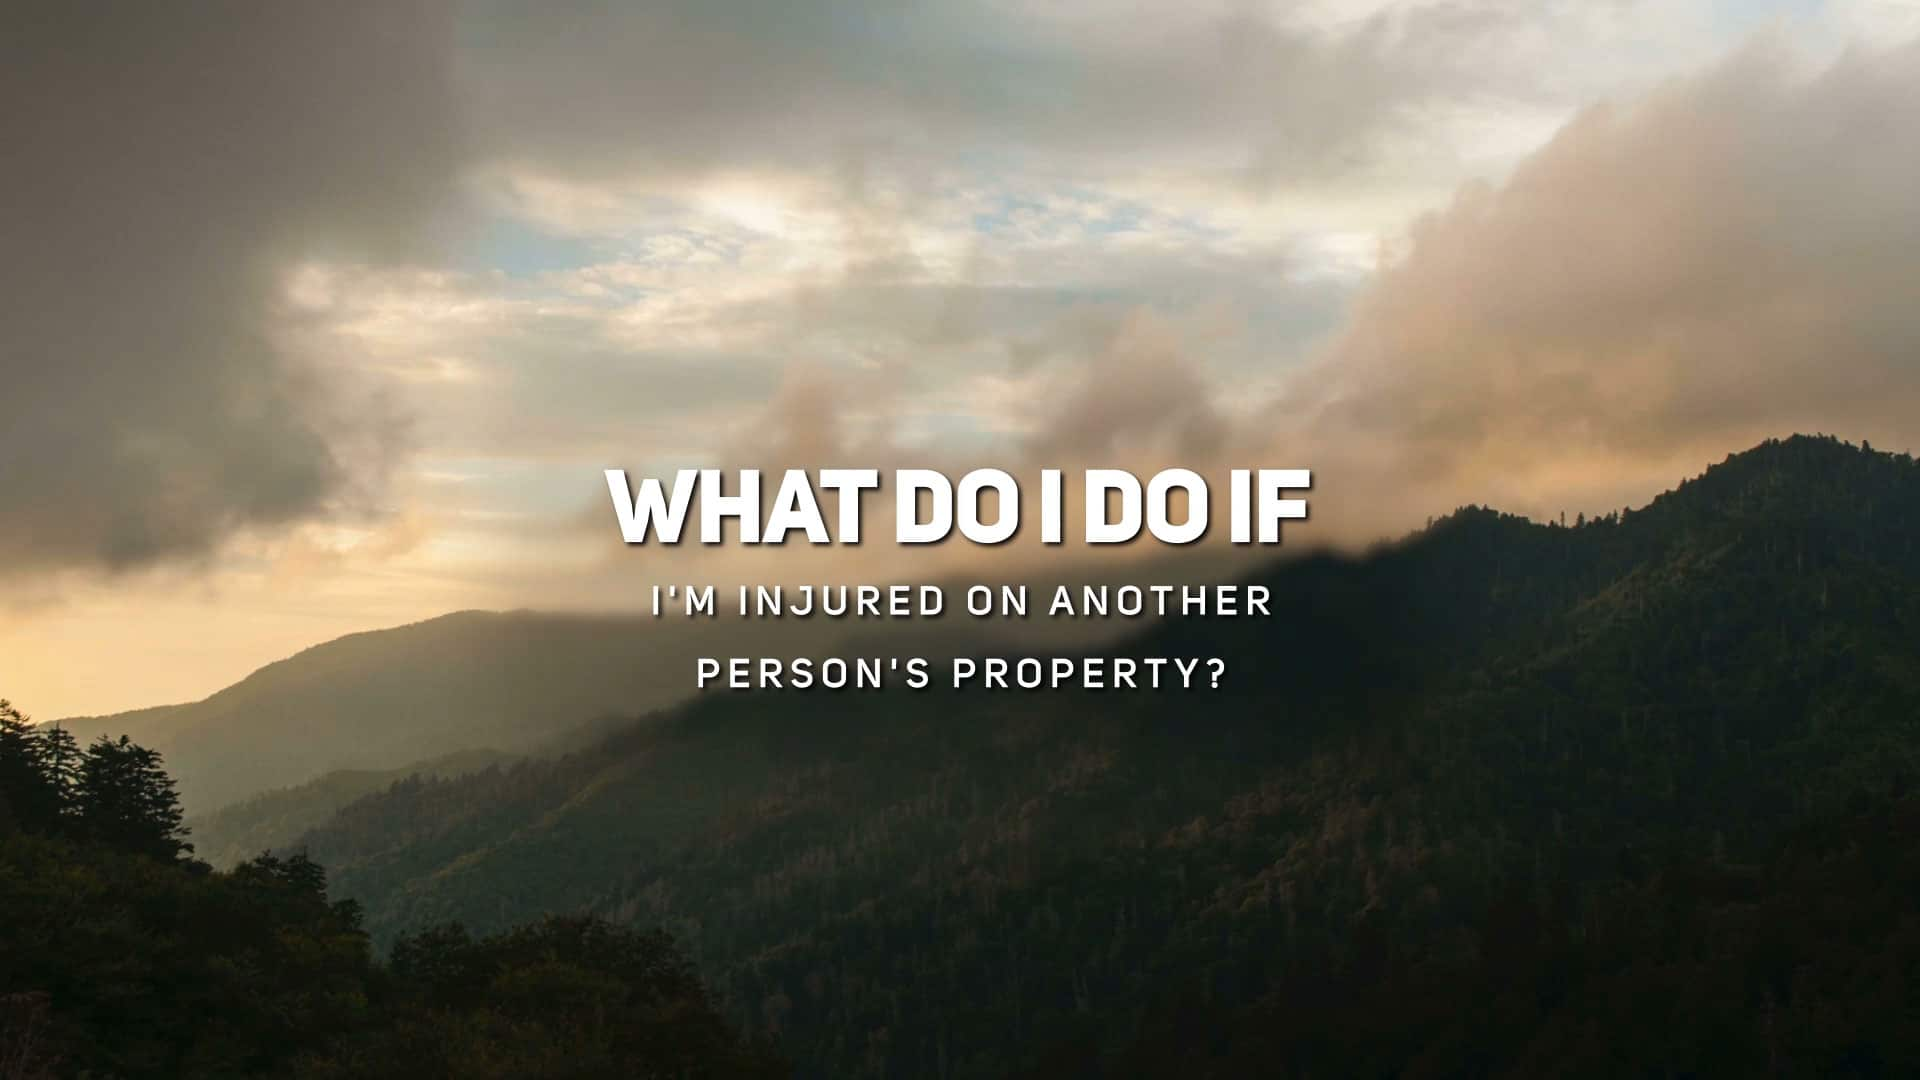 What Do I Do If I'm Injured on Another Persons Property?